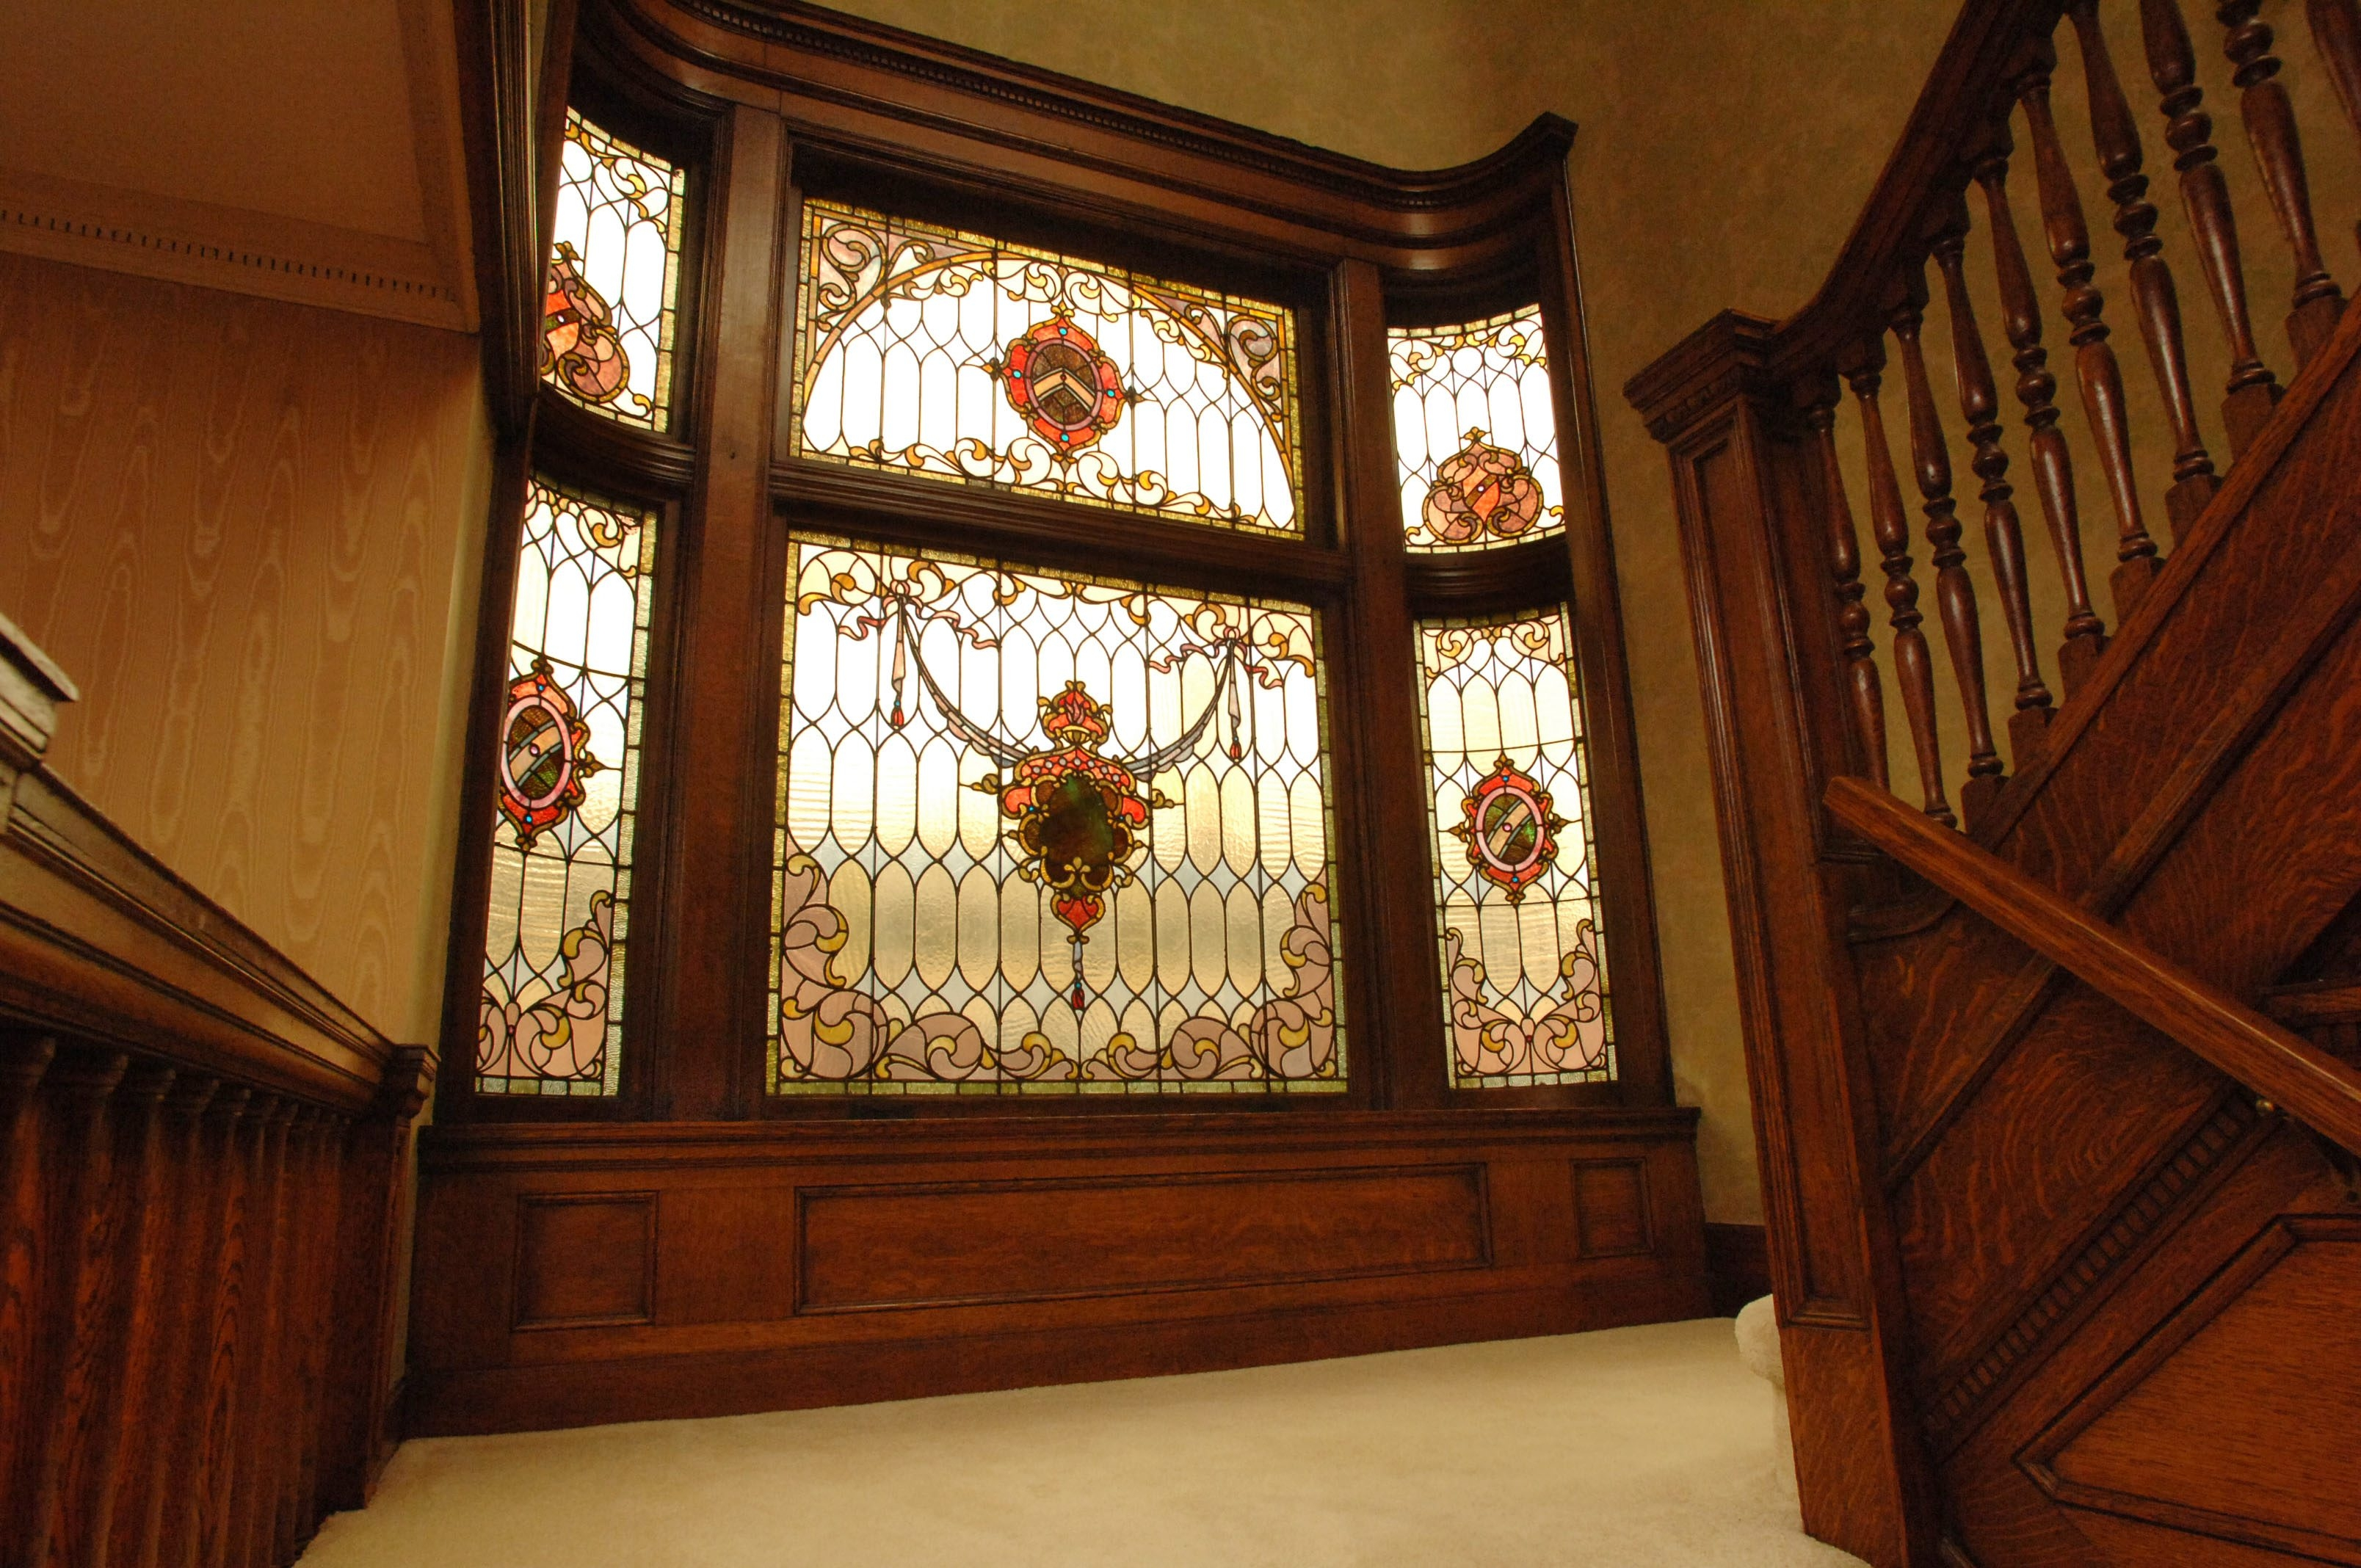 Tour time: A staircase with stained-glass windows is one of the highlights of James Mack's 121-year-old Queen Anne, one of 10 homes to be open during the Historic Linwood Tour of Homes on May 4. This Second Empire home, above left, also is on the Linwood tour. The porch becomes a gathering place at the home of Ken and Phyllis Wells, left. The house will be featured in the 16th annual Parkside Tour of Homes on May 18.